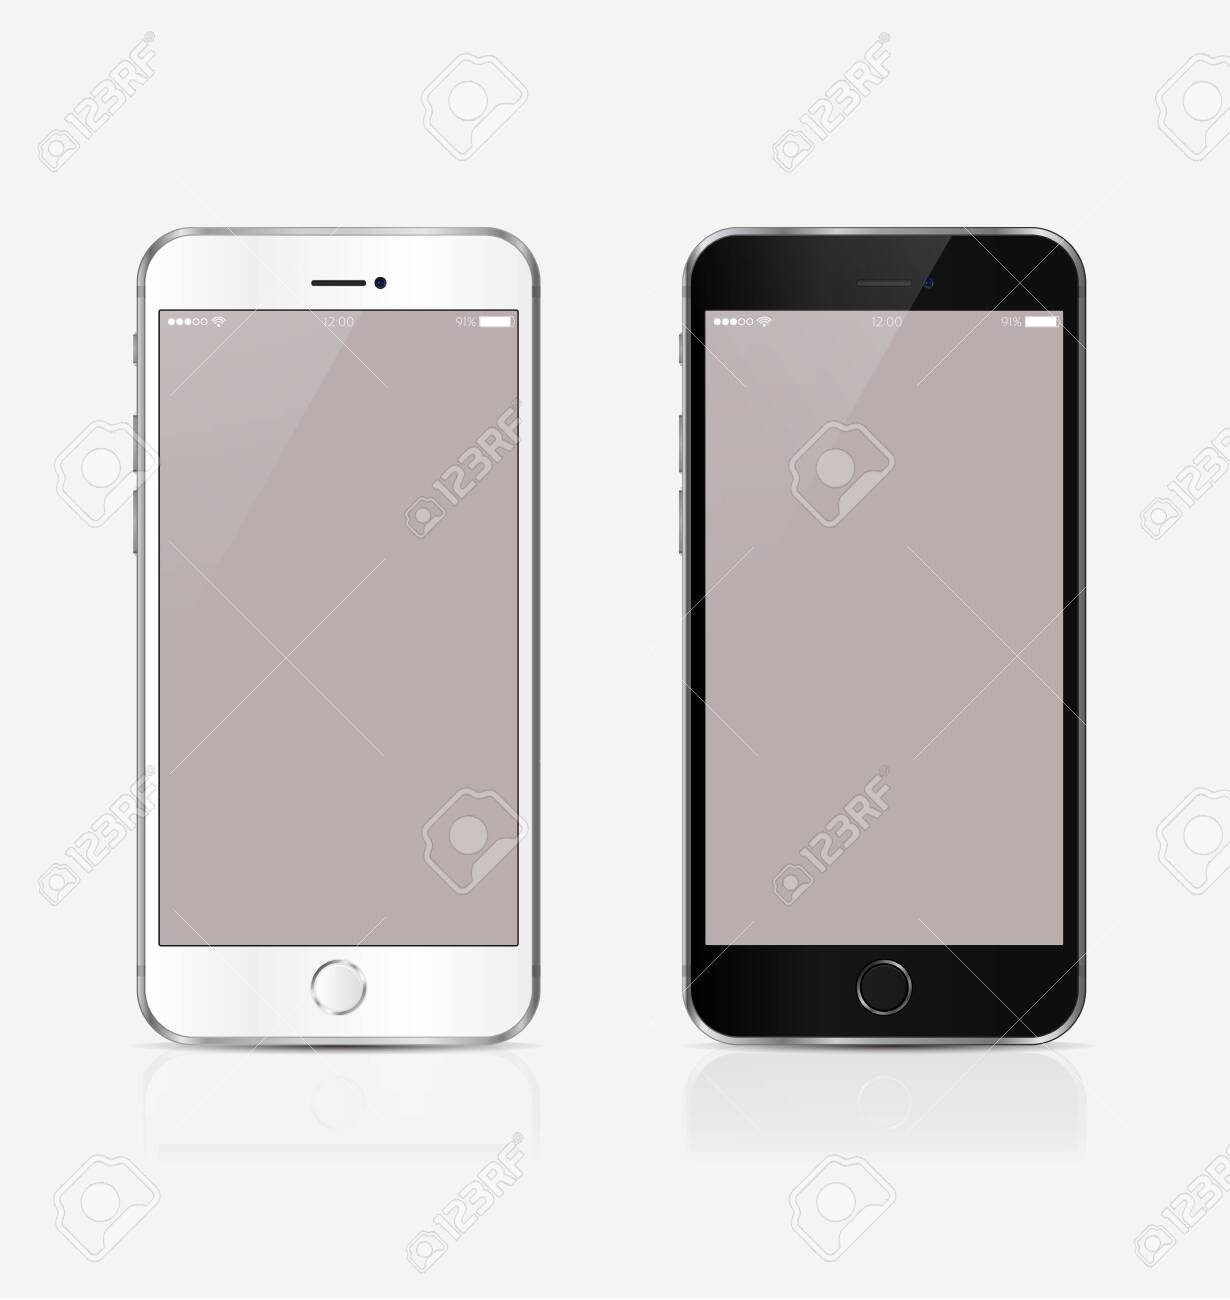 New realistic mobile phone smartphone collection mockups with blank screen isolated on white background. Vector illustration. for printing and web element, Game and application mockup - 149603017